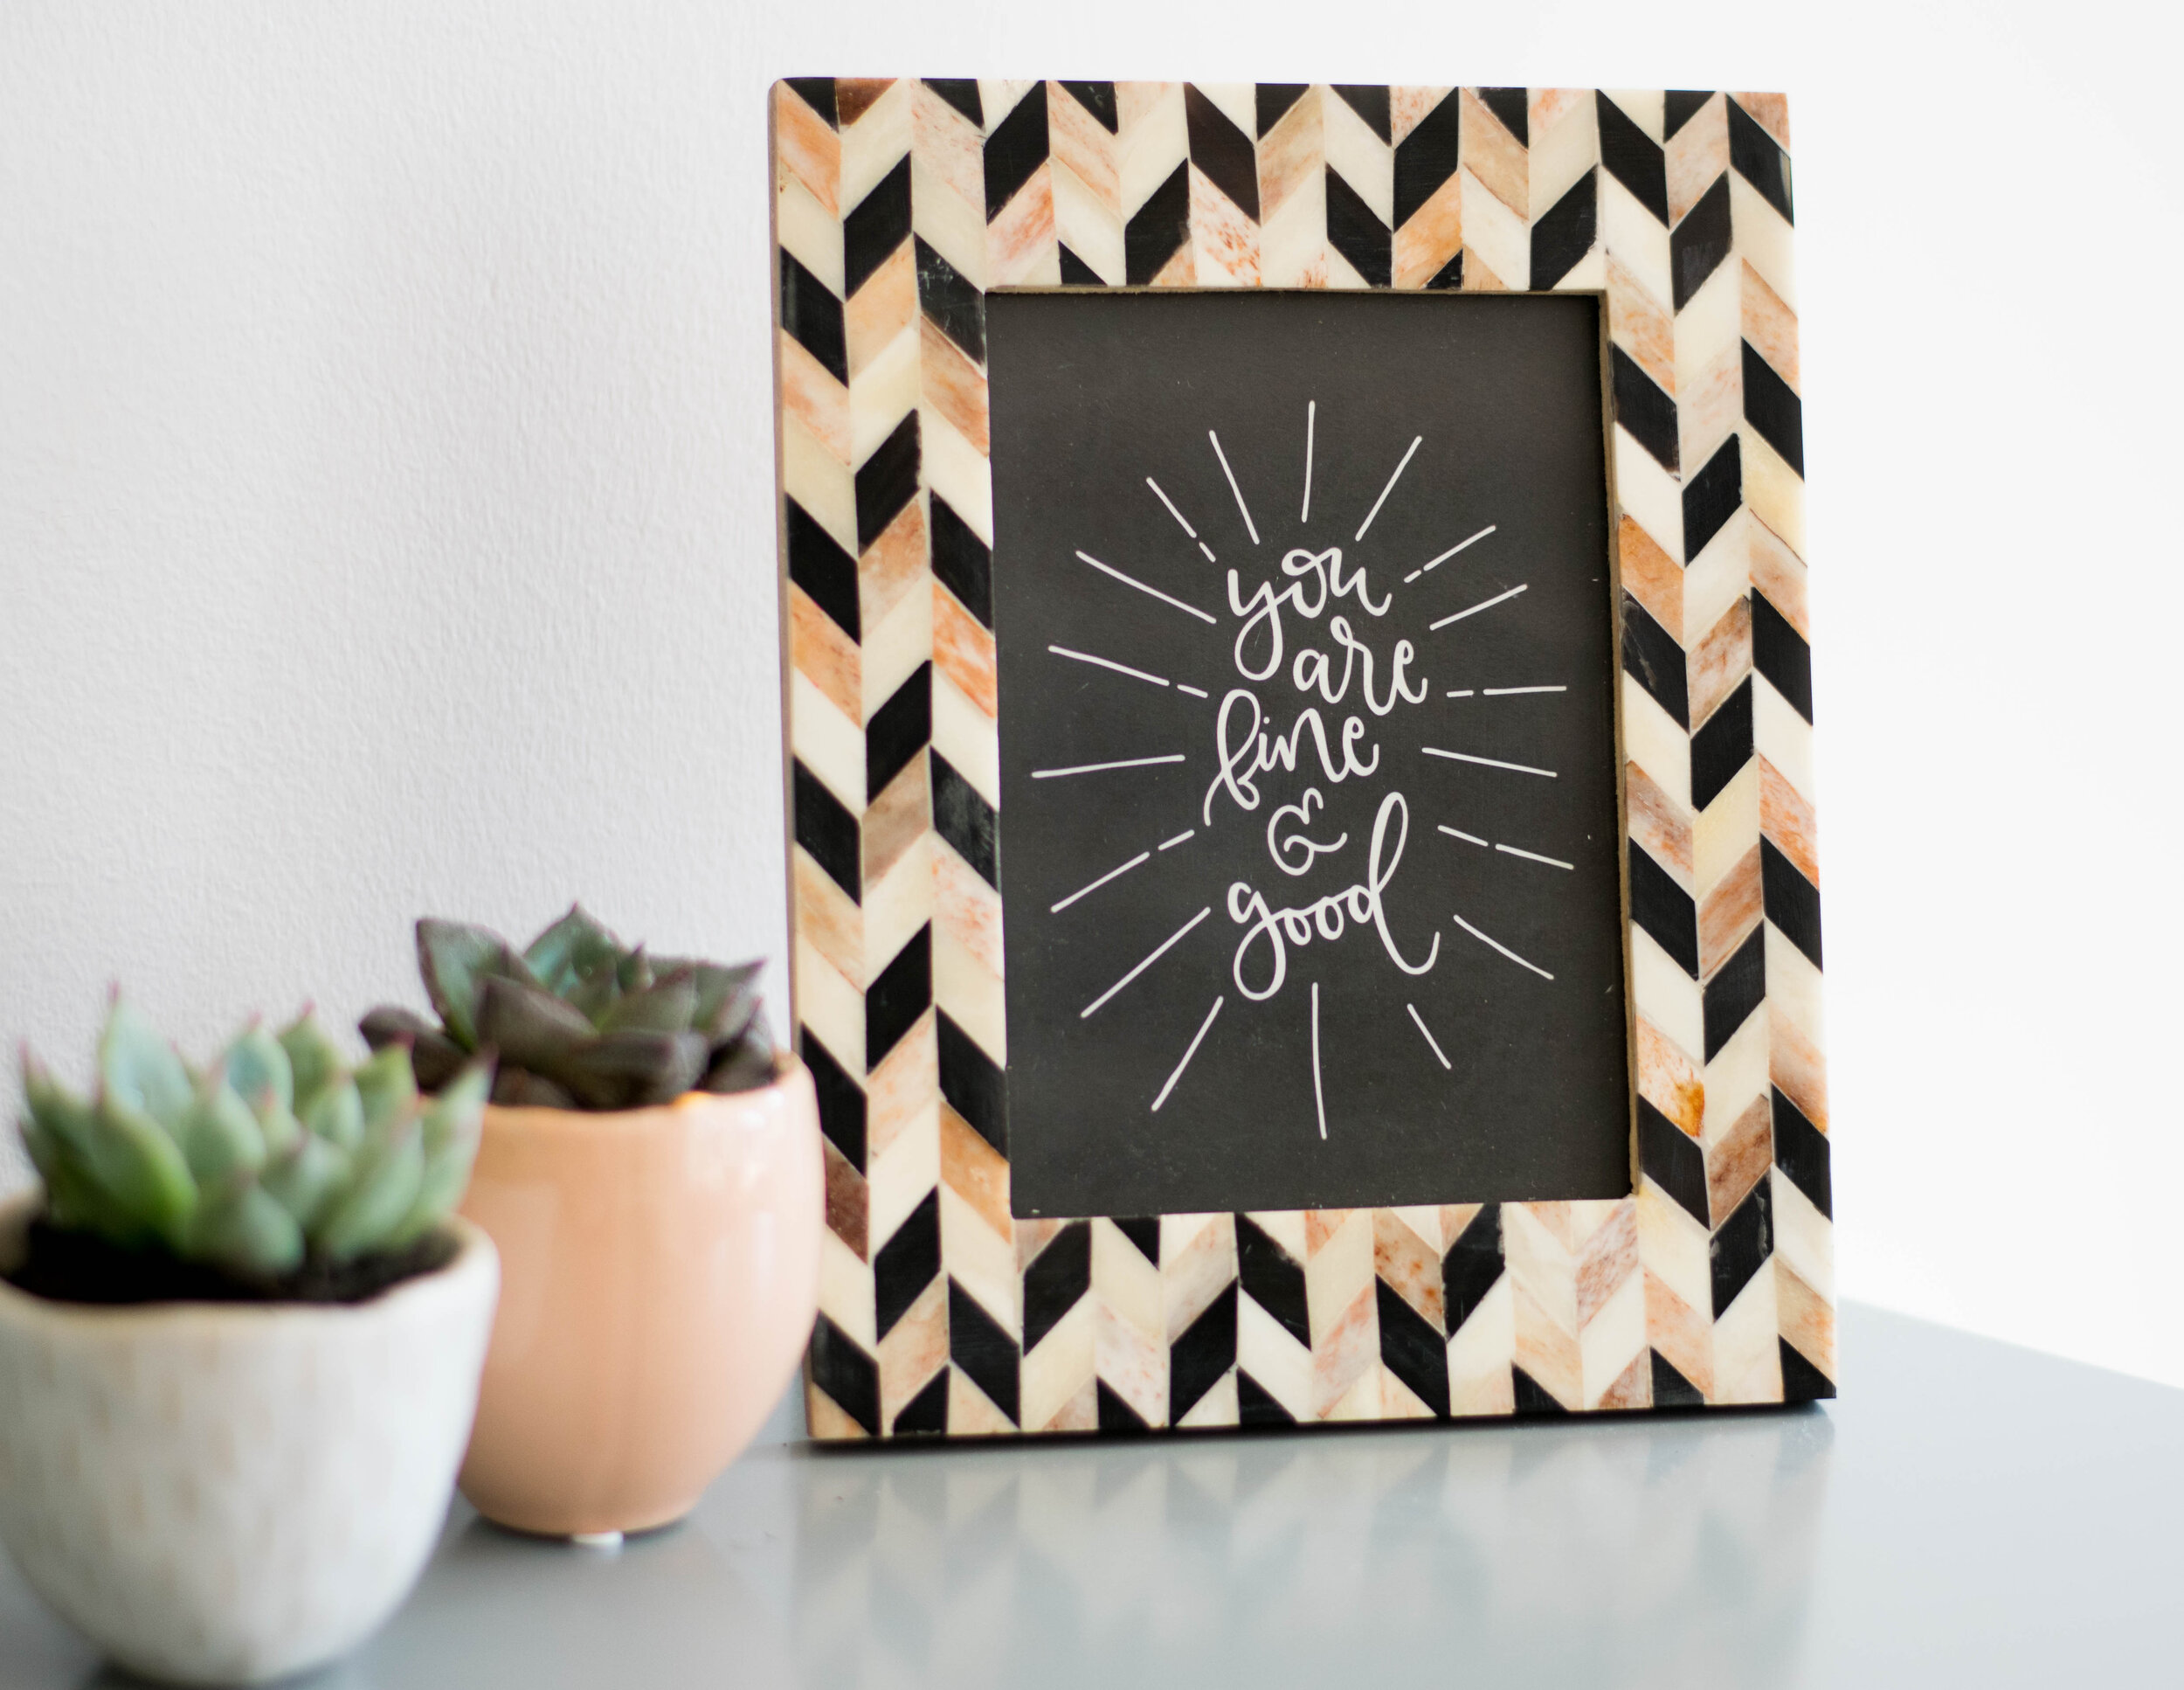 affordable ethical home decor